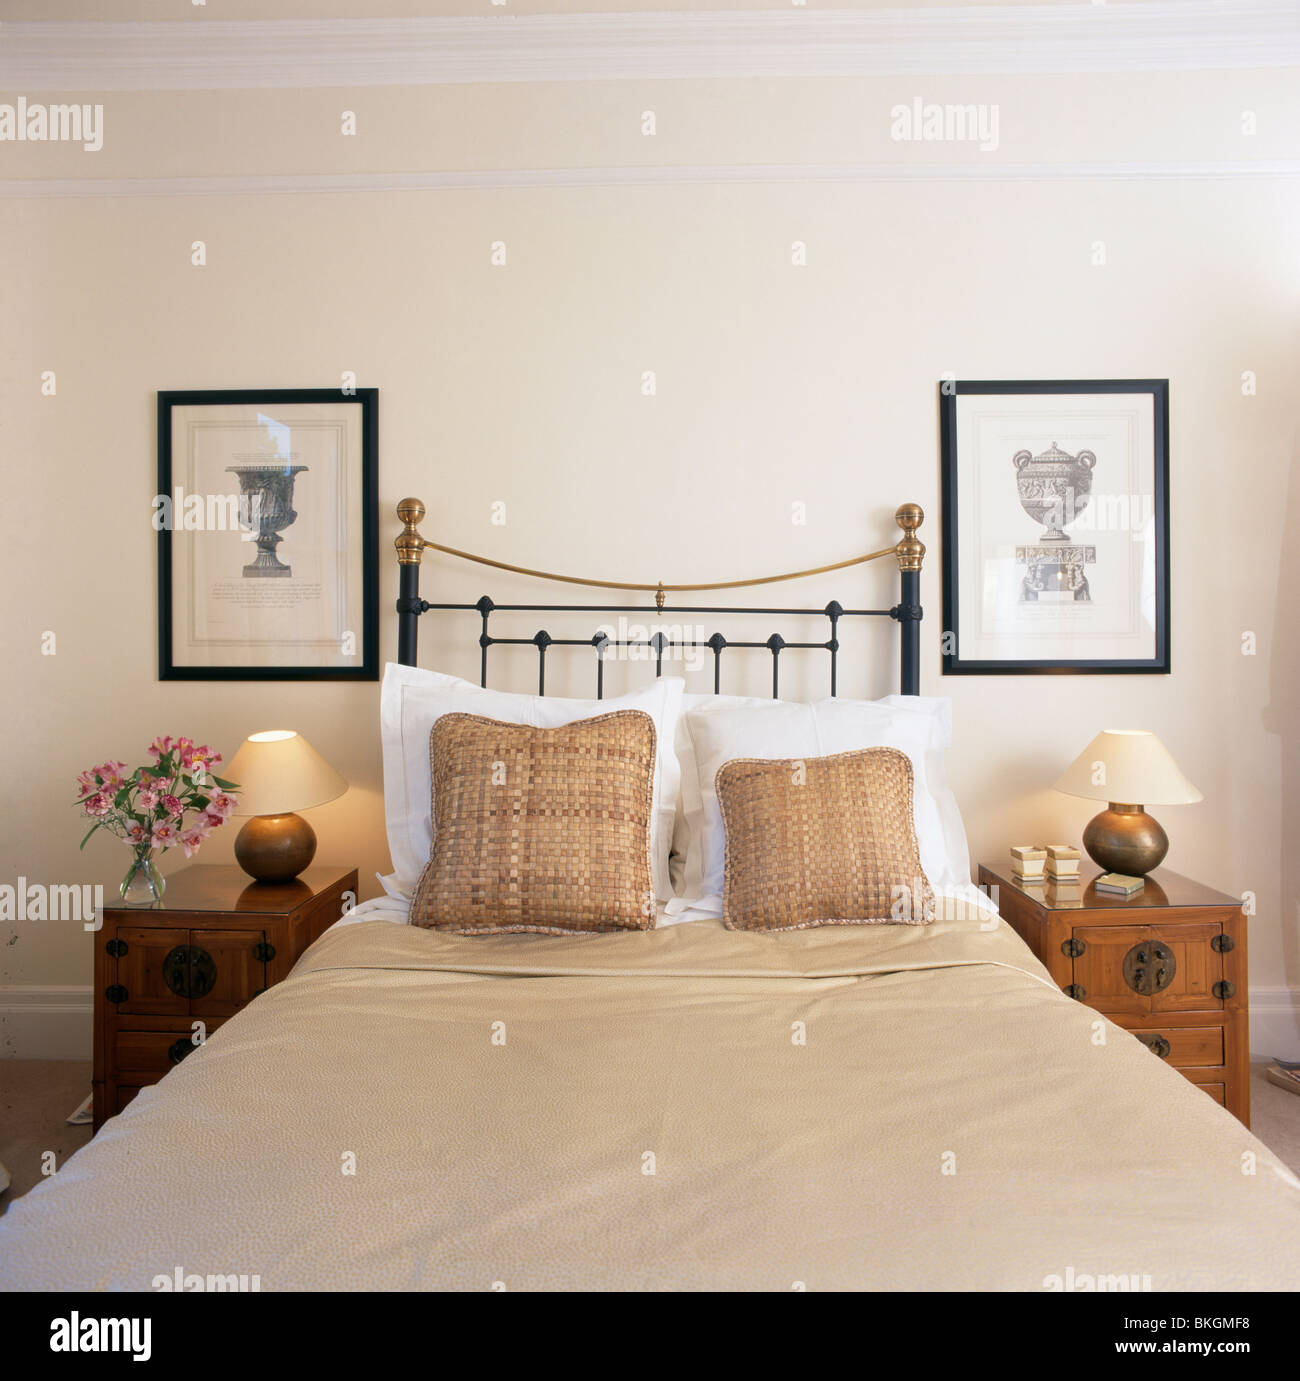 Pictures On Wall Above Brass Bad With Beige Patterned Cushions And Beige  Bed Cover In Townhouse Bedroom With Lighted Lamps